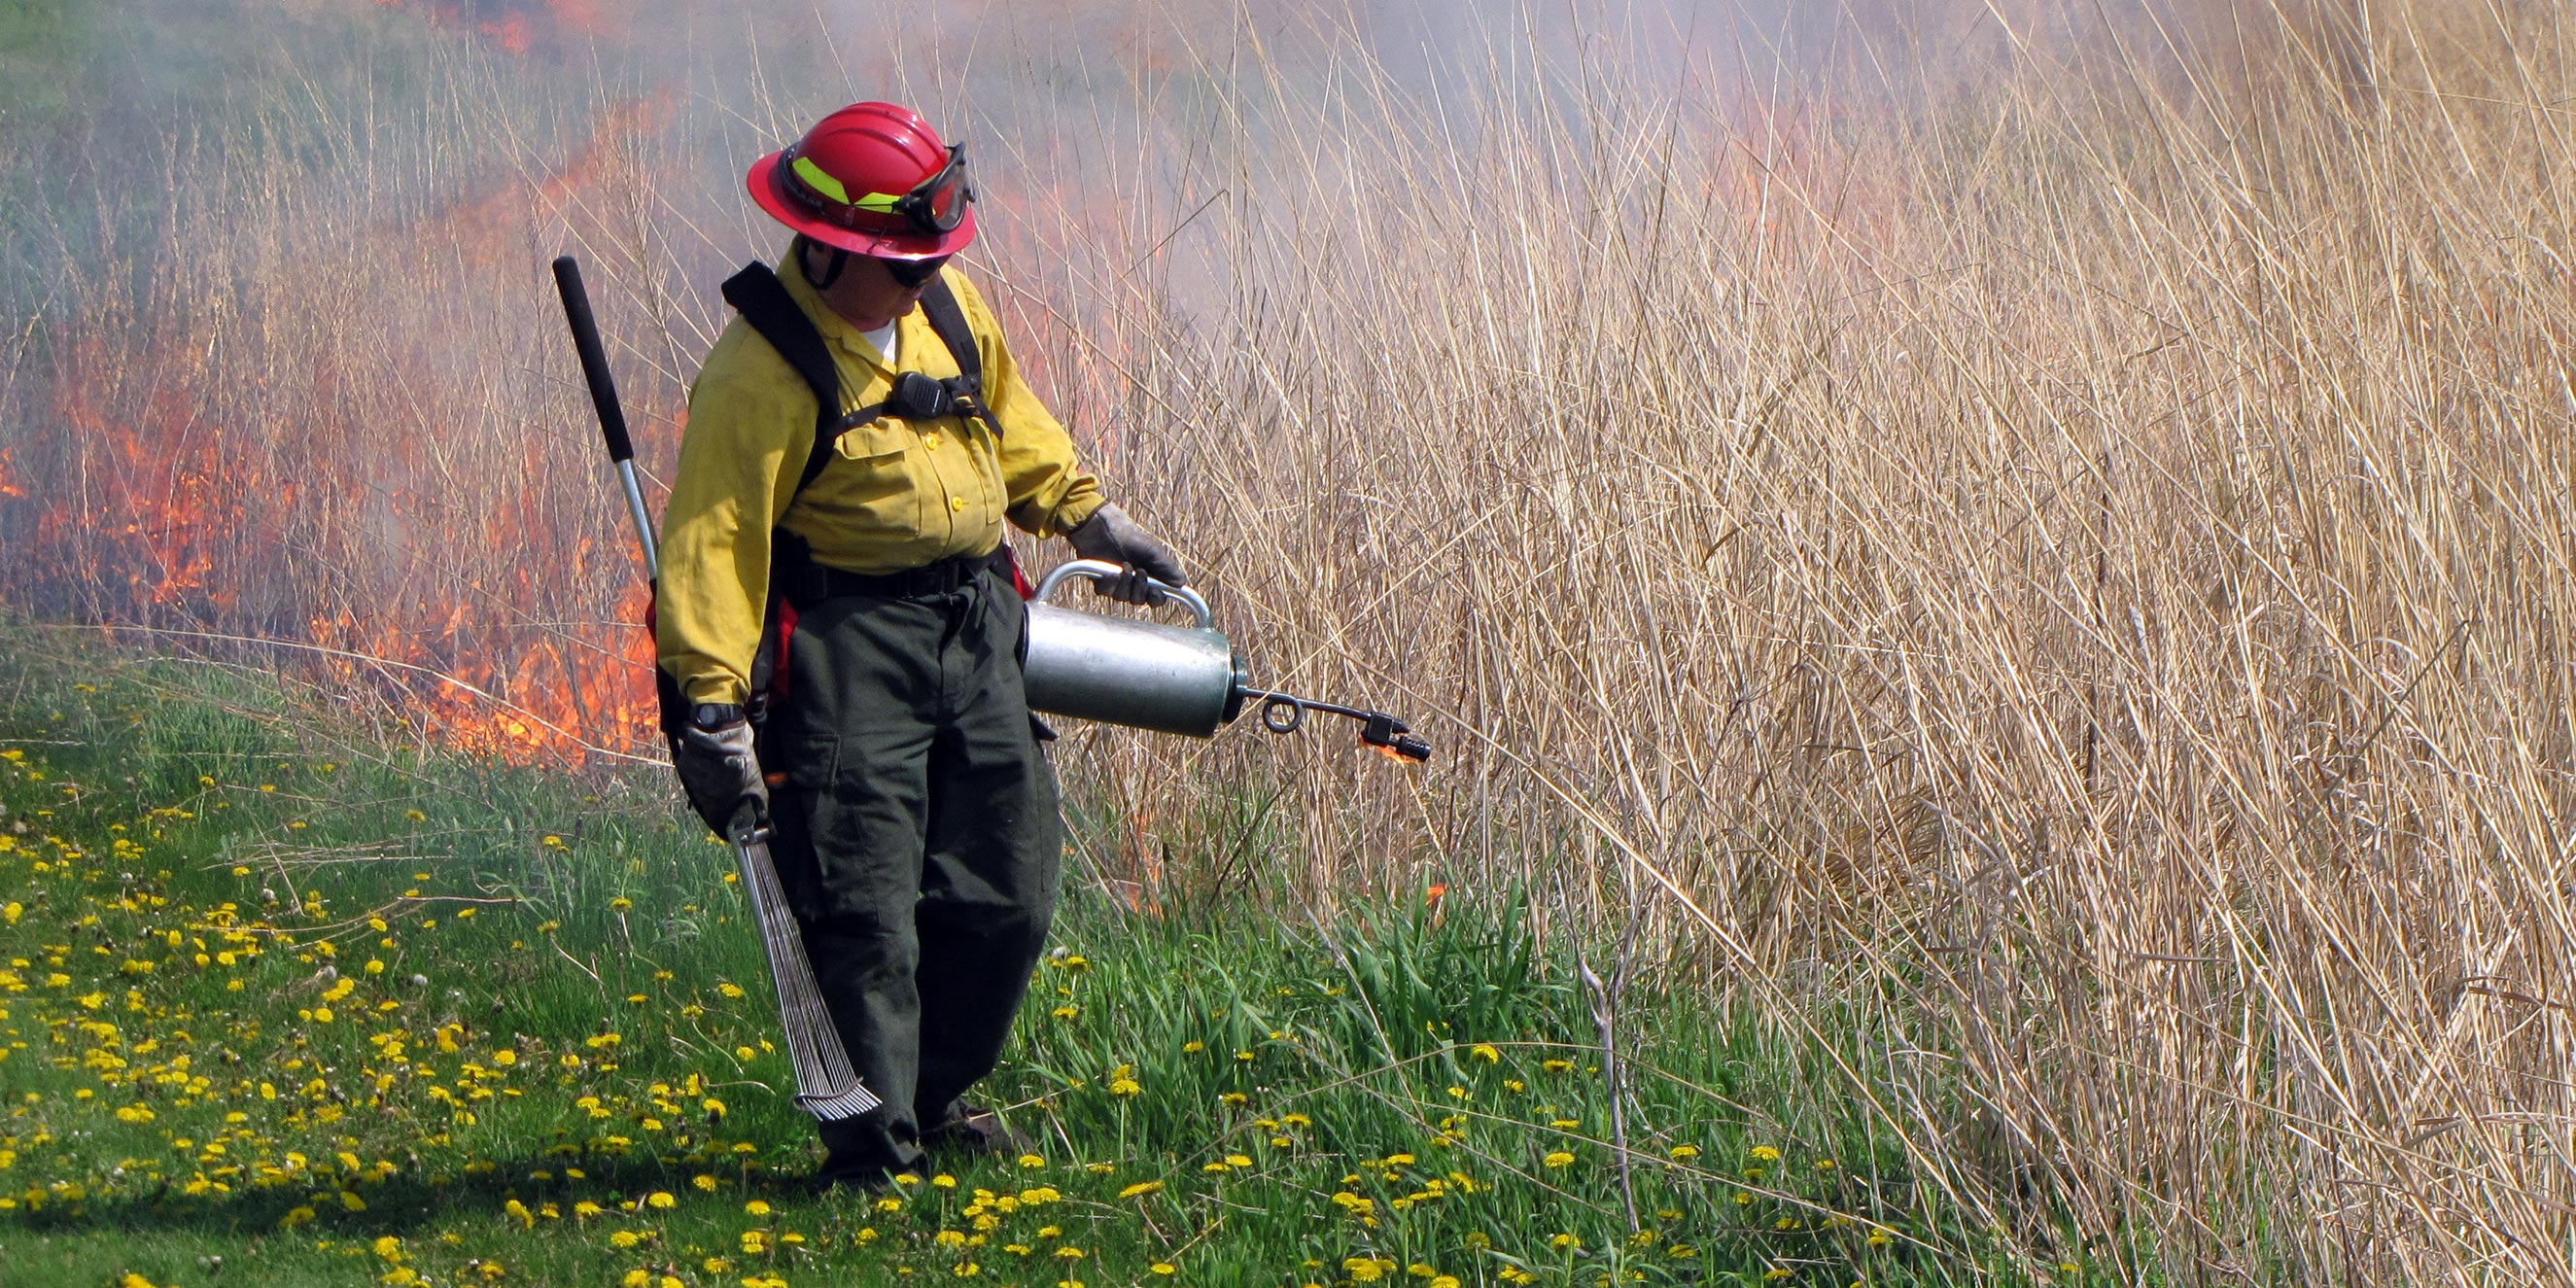 A firefighter walks along a prairie trail lighting dry grasses on fire.